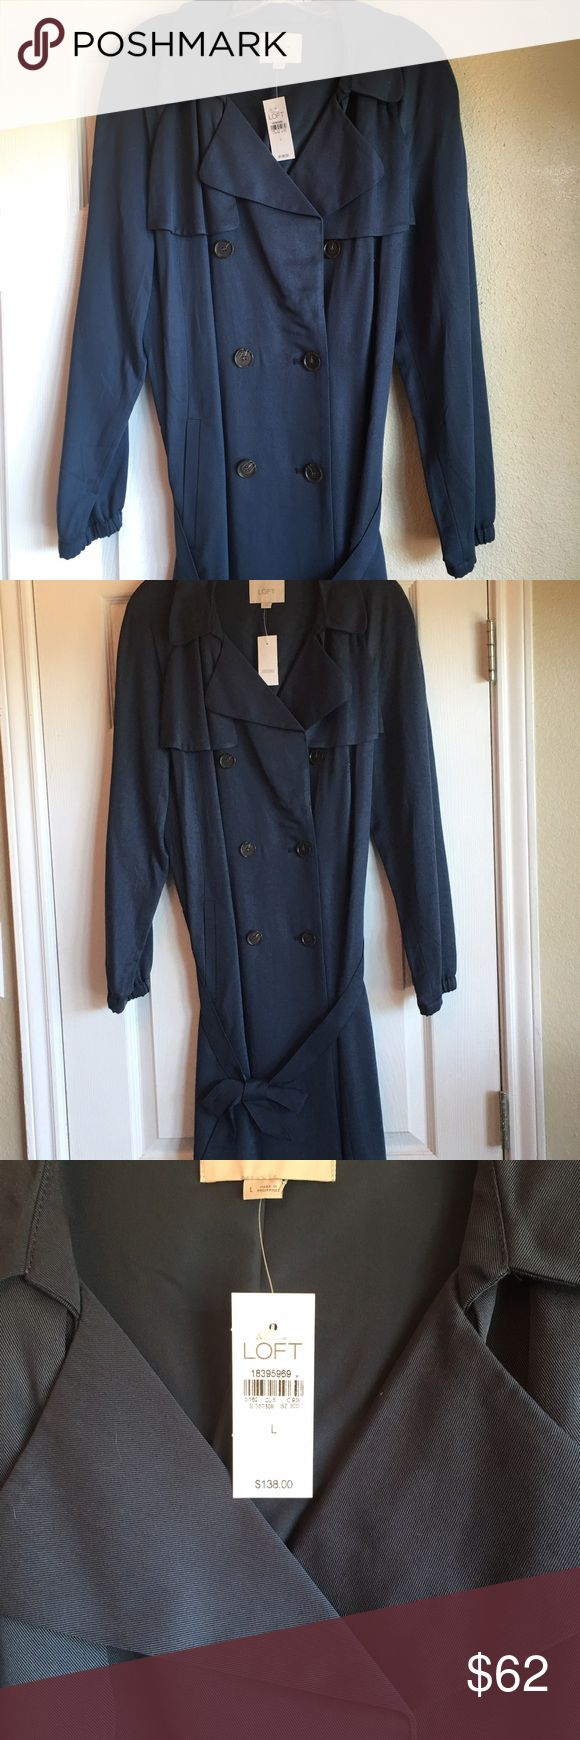 Loft lightweight trench coat Never worn!  Blue trench, fully lined, with belt. LOFT Jackets & Coats Trench Coats